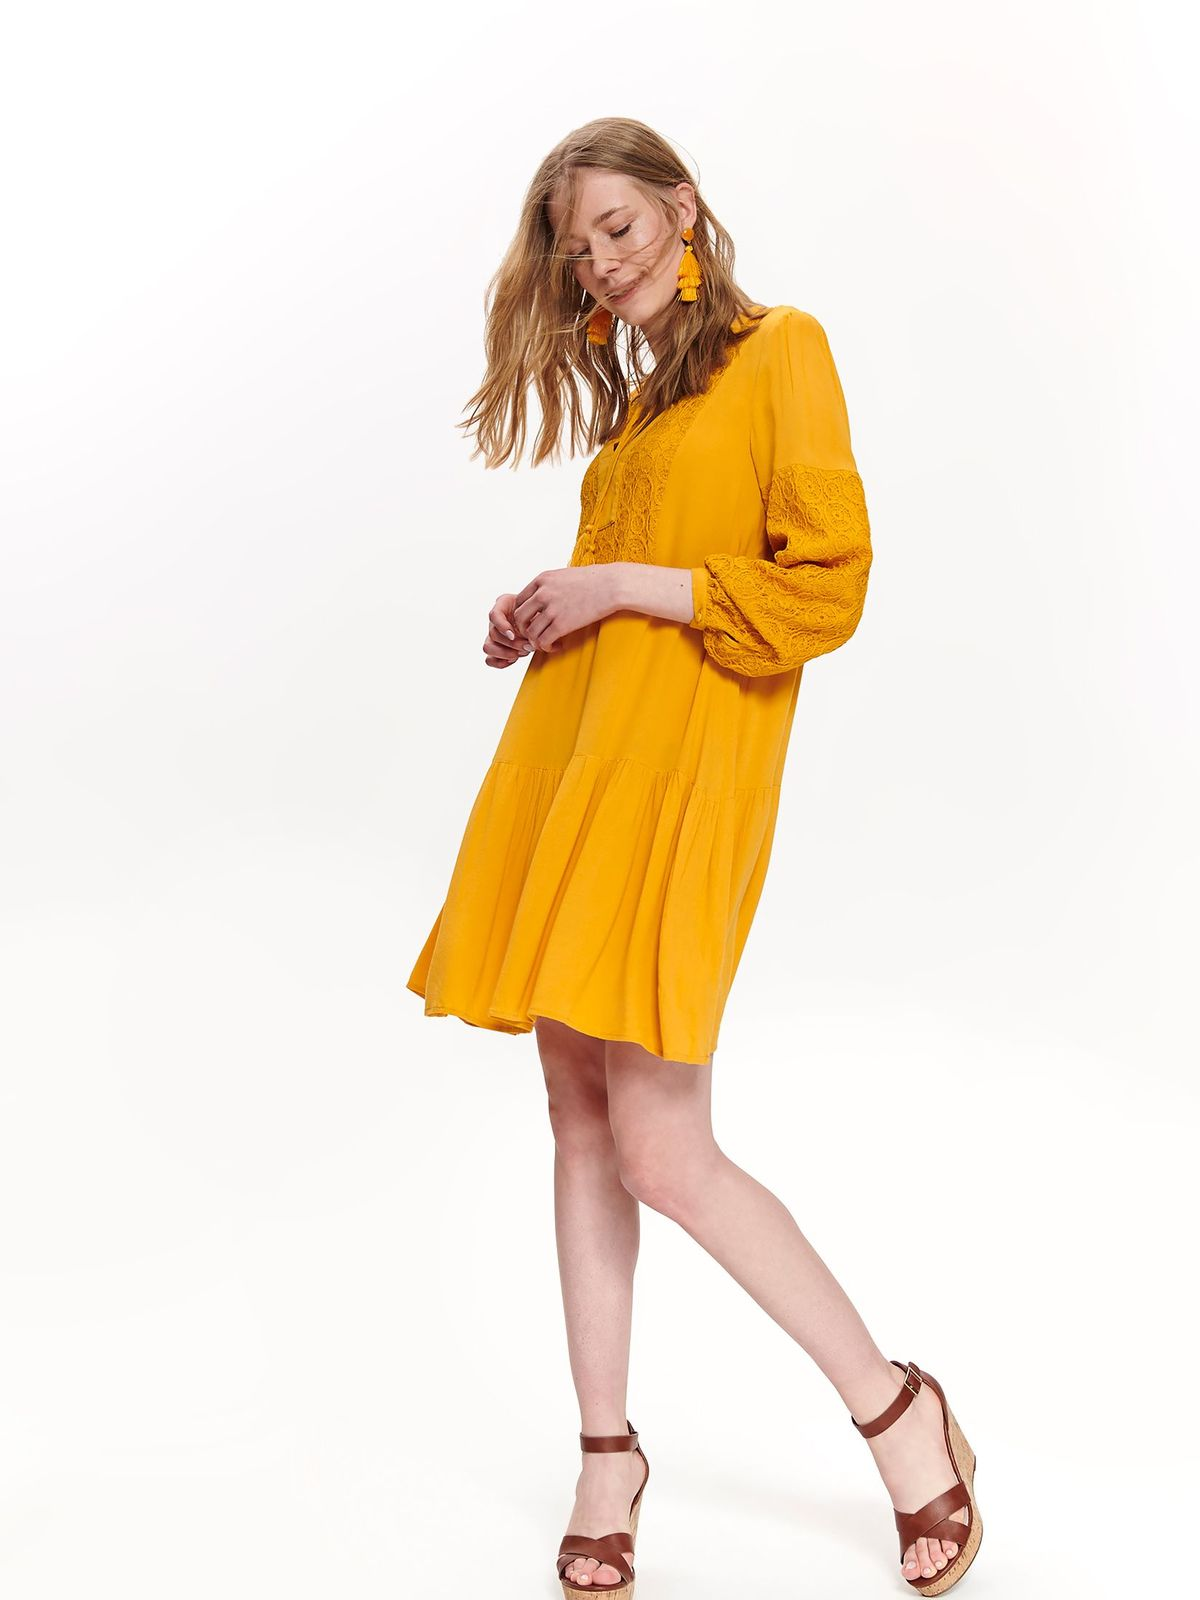 Top Secret yellow casual flared dress airy fabric with lace details